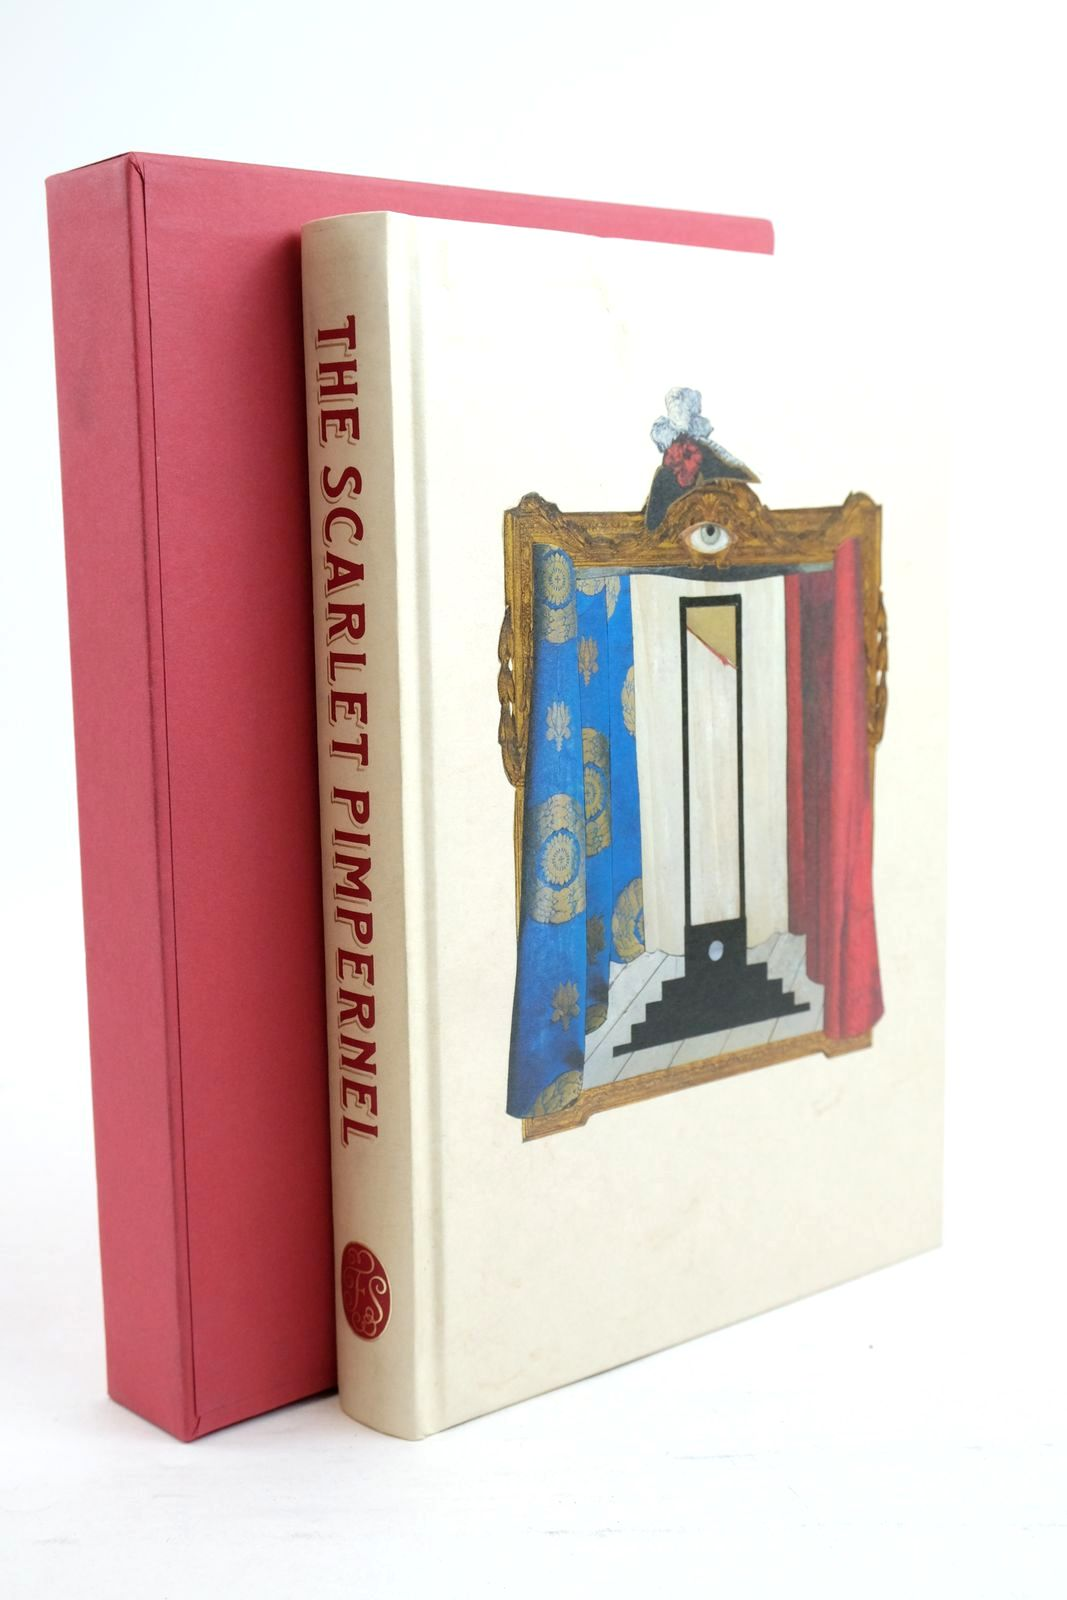 Photo of THE SCARLET PIMPERNEL written by Orczy, Baroness Mantel, Hilary illustrated by Weller, Lucy published by Folio Society (STOCK CODE: 1320900)  for sale by Stella & Rose's Books